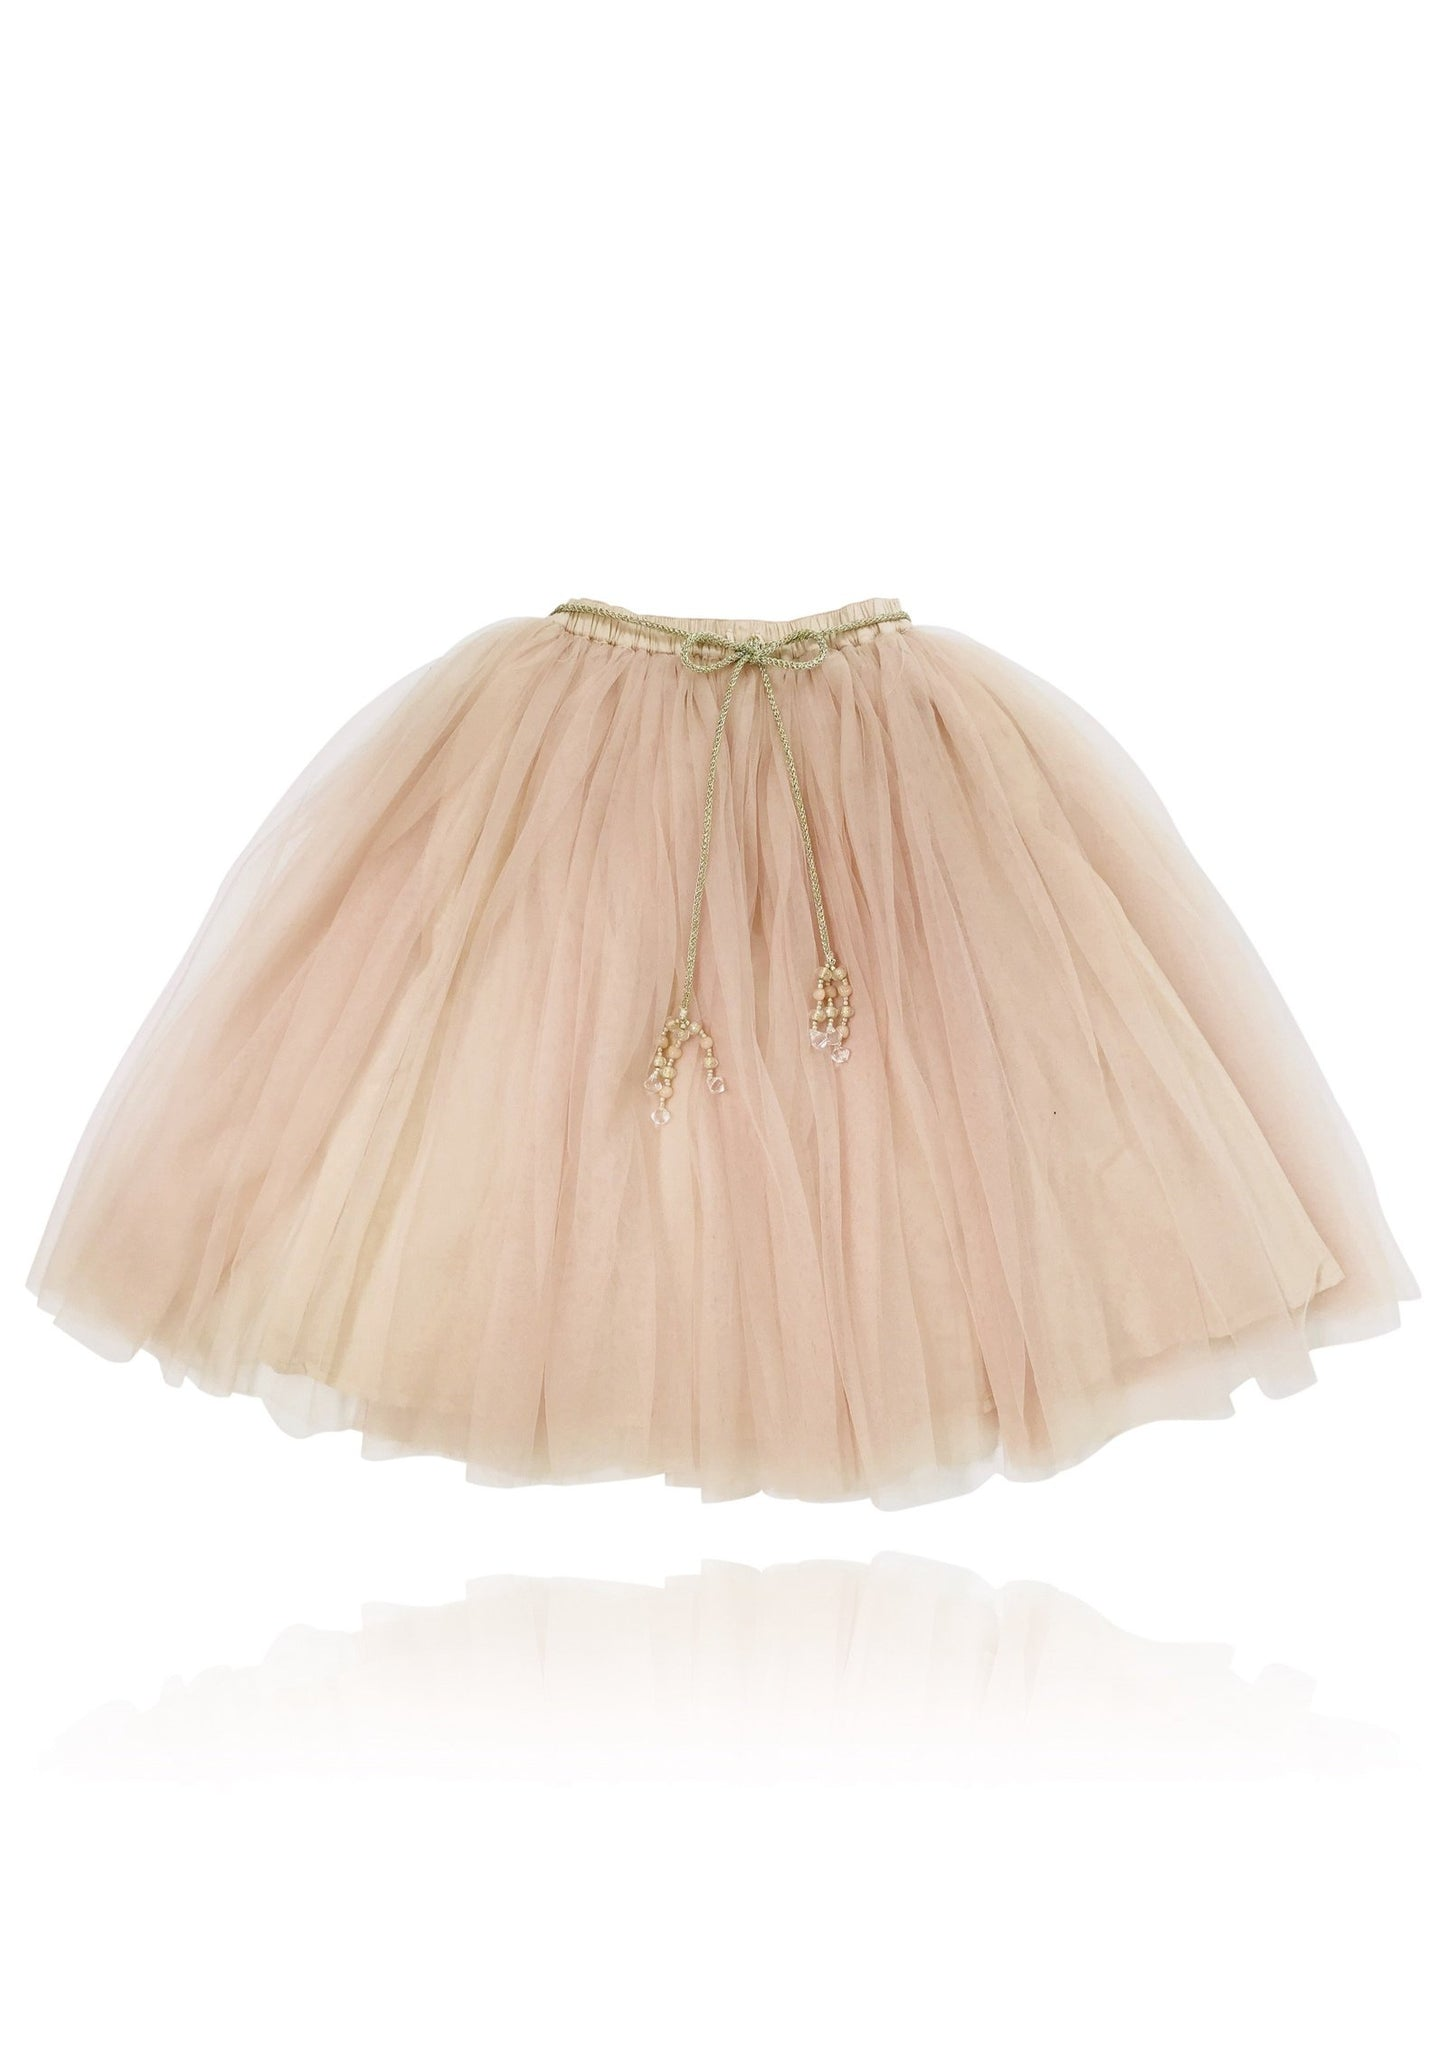 DOLLY by Le Petit Tom ® SIGNATURE LONG TUTU ballet pink